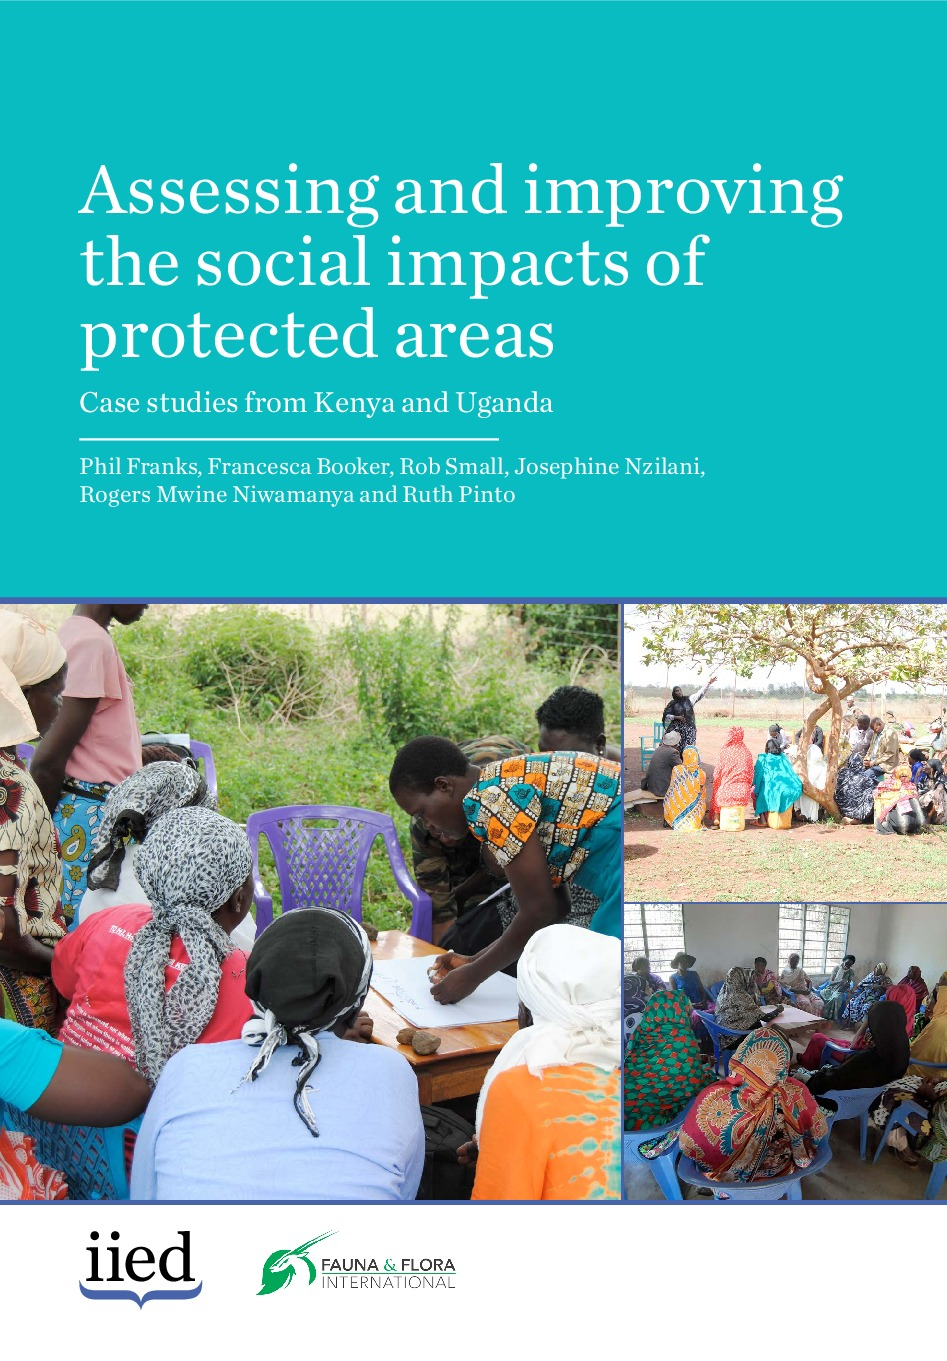 Assessing and improving the social impacts of protected areas: case studies from Kenya and Uganda